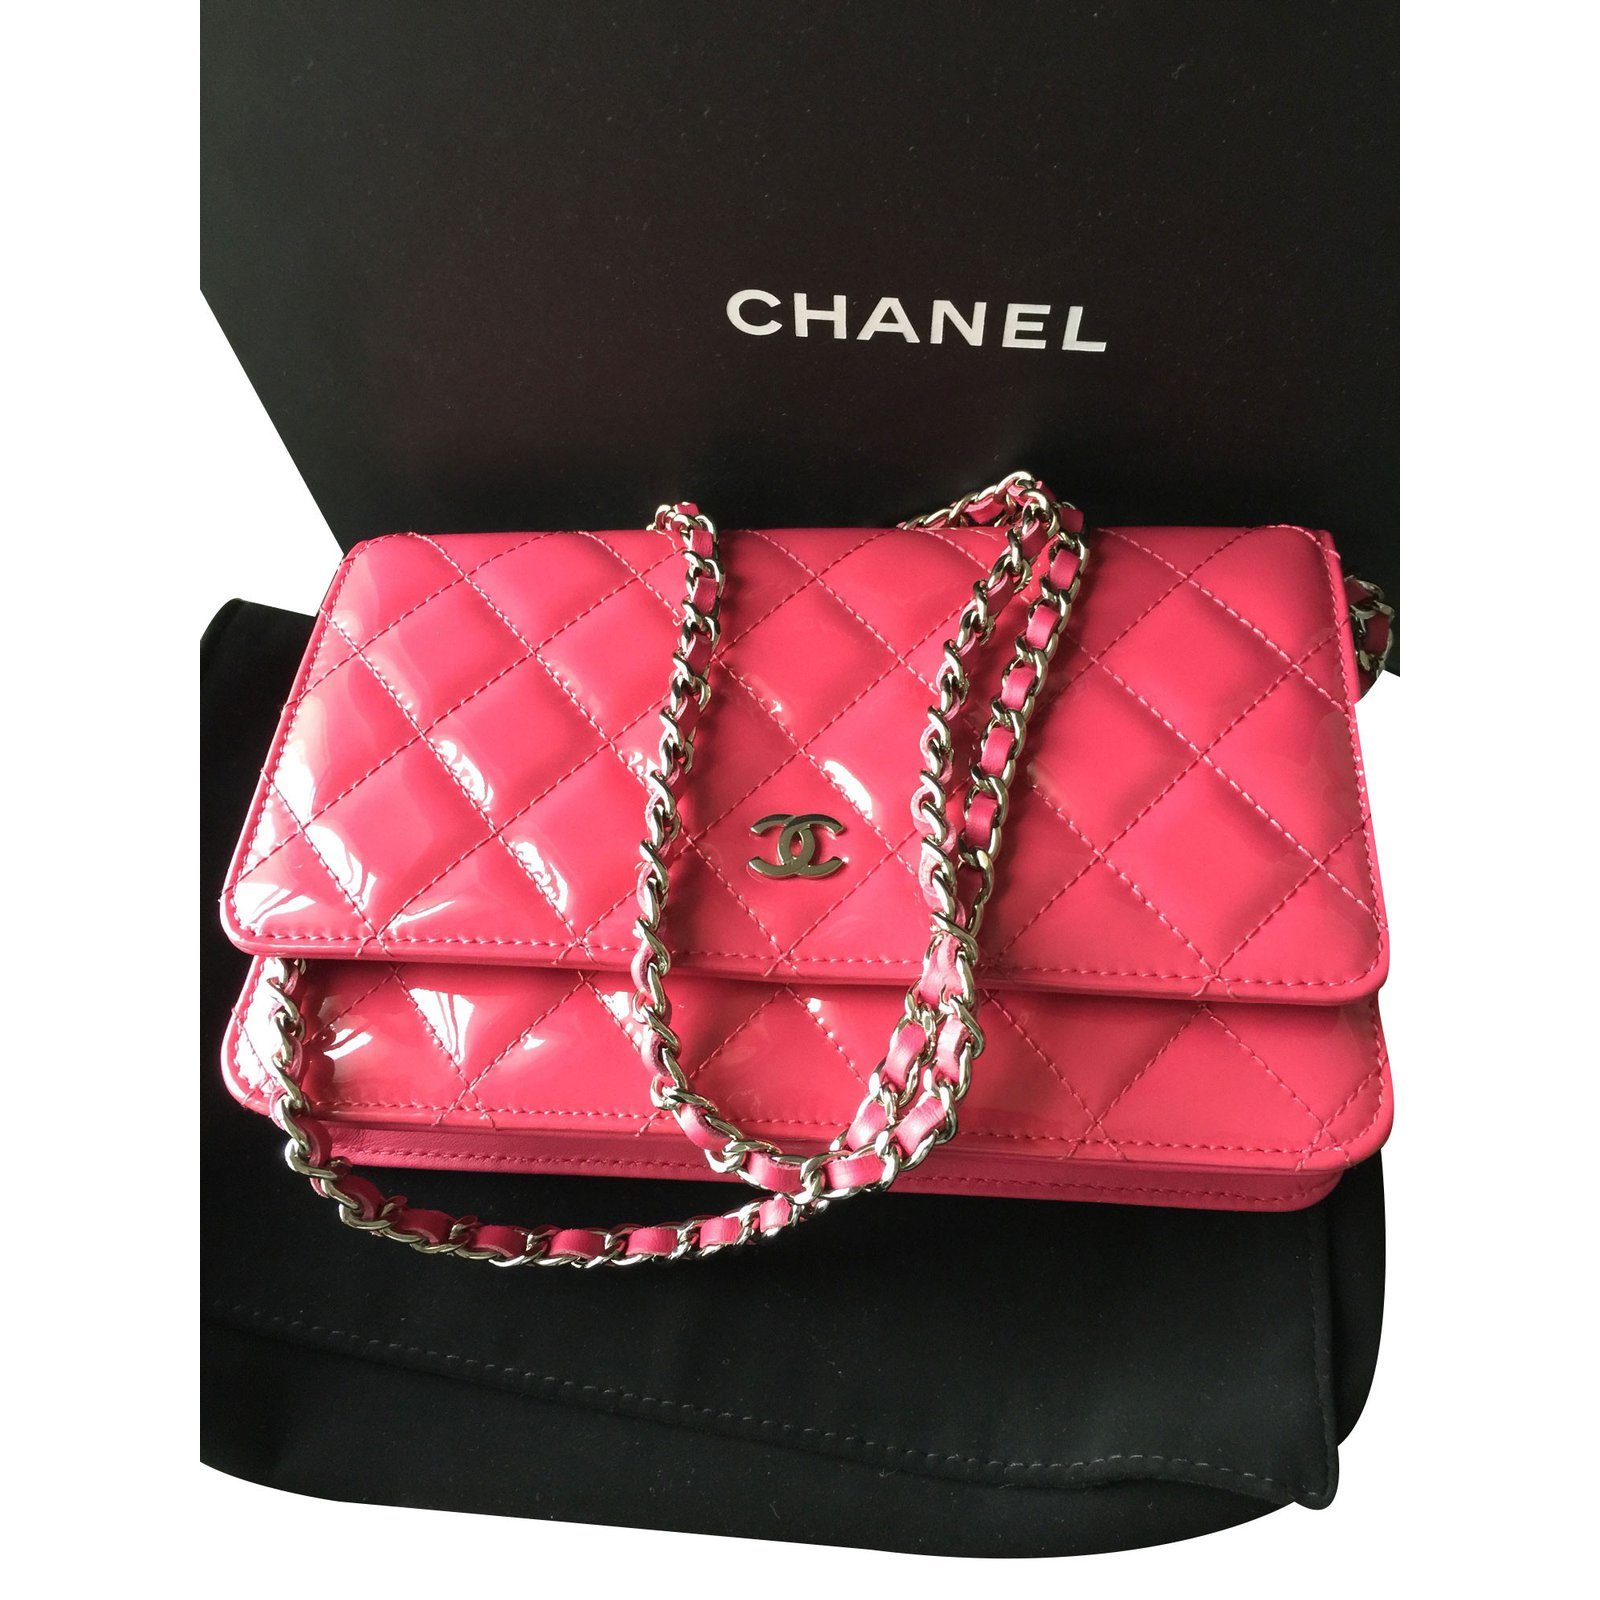 e8fe85bac8 Chanel Pink Chanel wallet on chain WOC Clutch bags Patent leather Pink  ref.16527 - Joli Closet